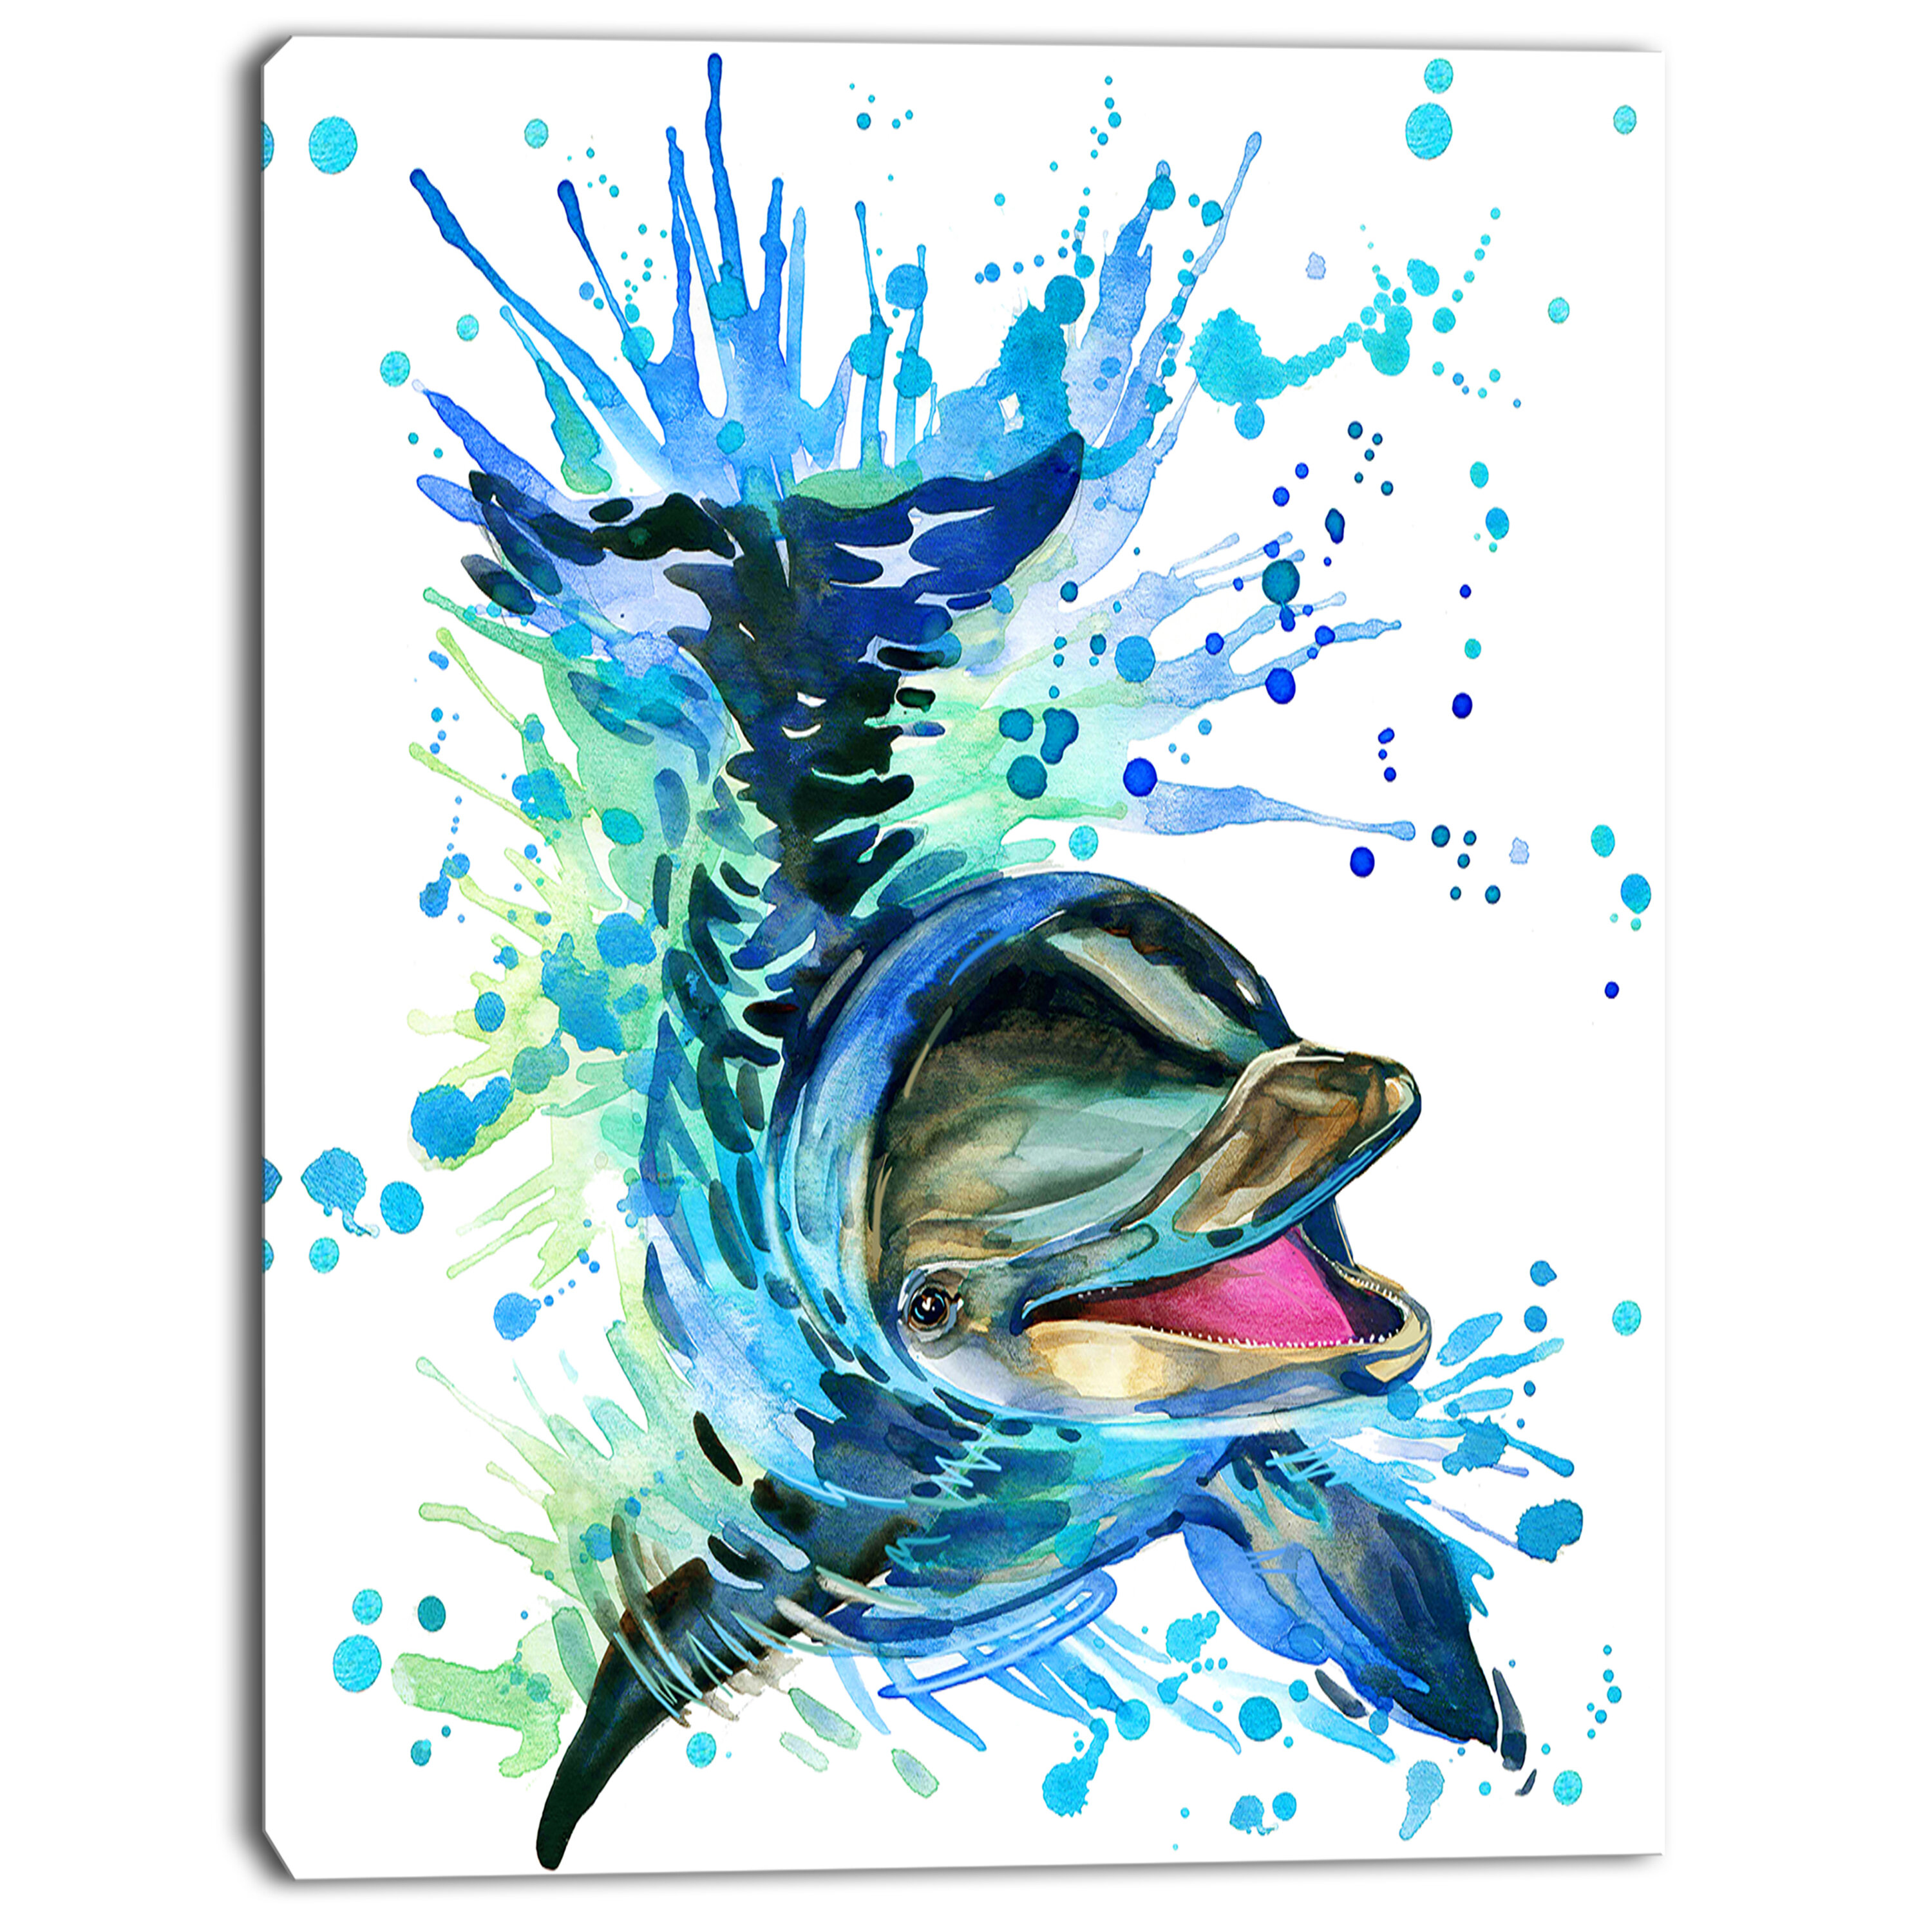 b465efc9882 DesignArt 'Large Blue Dolphin Watercolor' Painting Print on Wrapped Canvas  & Reviews | Wayfair